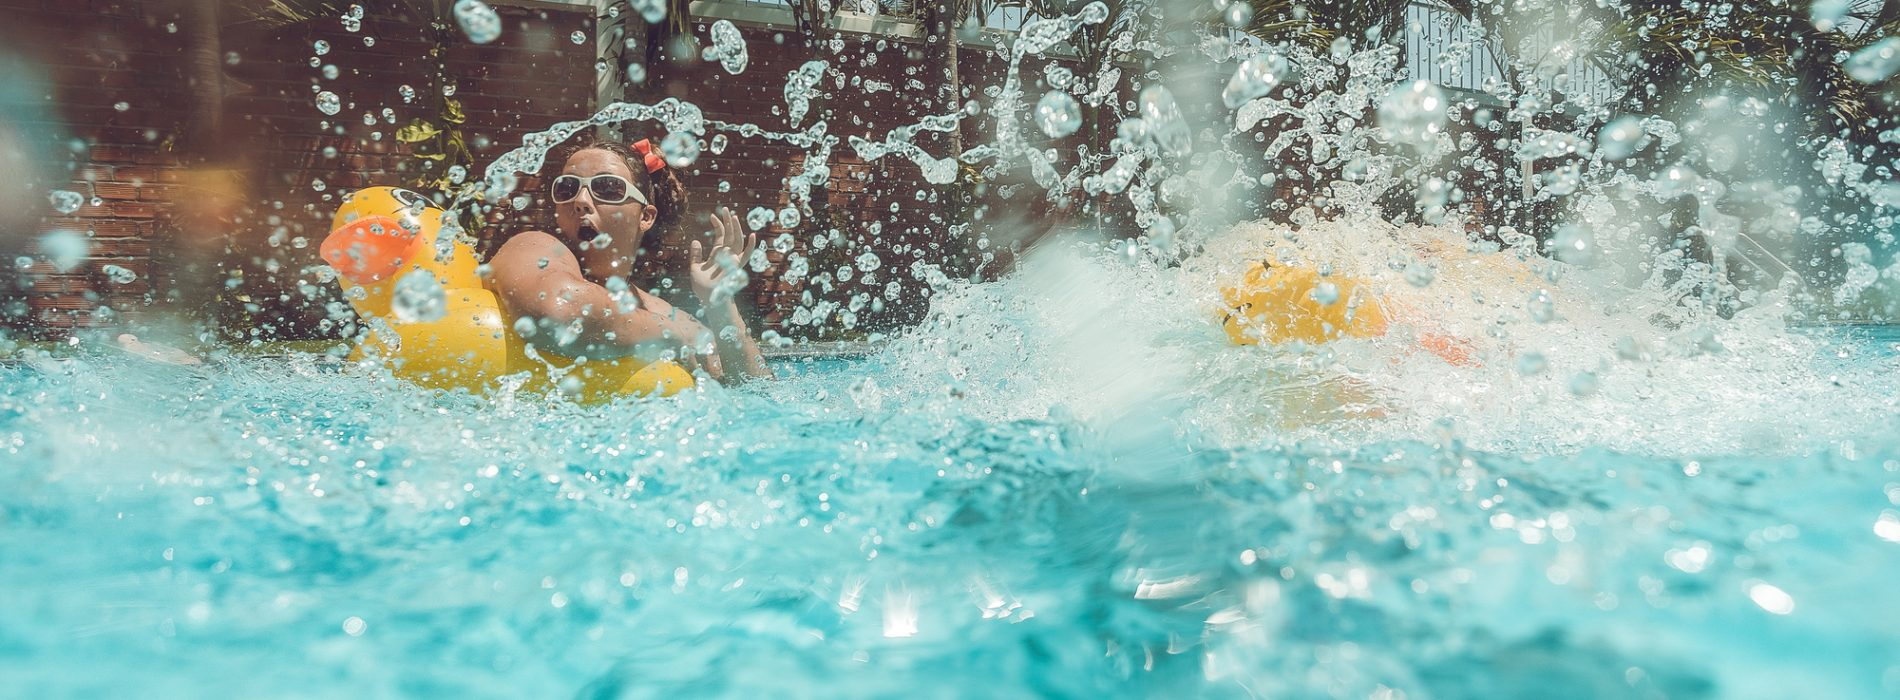 Time to Ditch the Waterwings – Apartment Living After Divorce